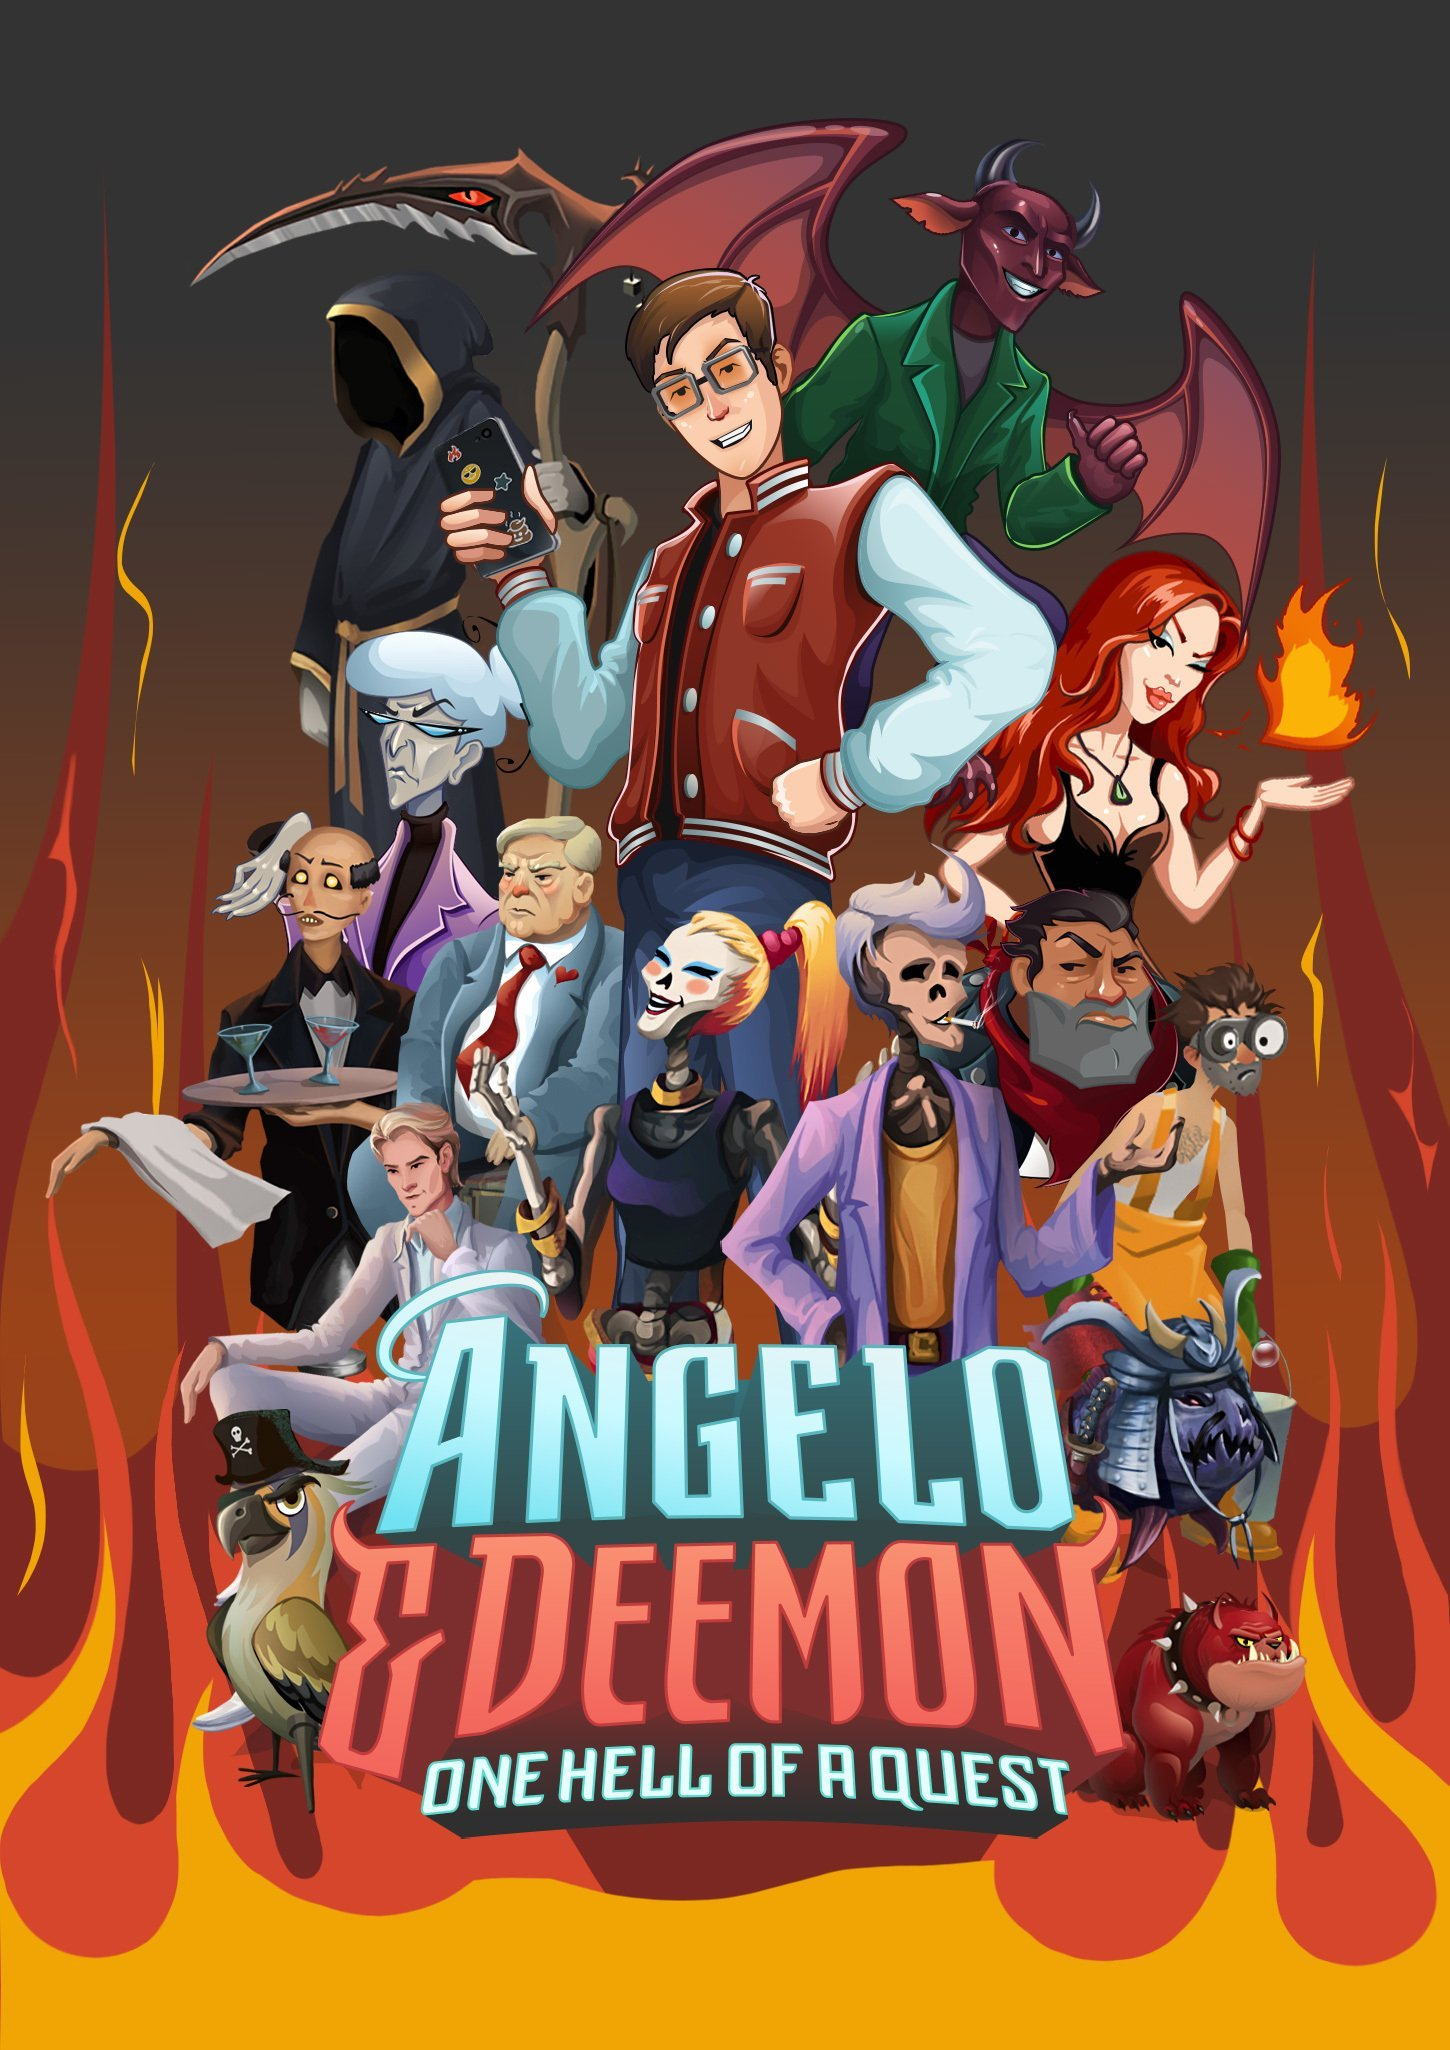 Angelo and Deemon: One Hell of a Ques